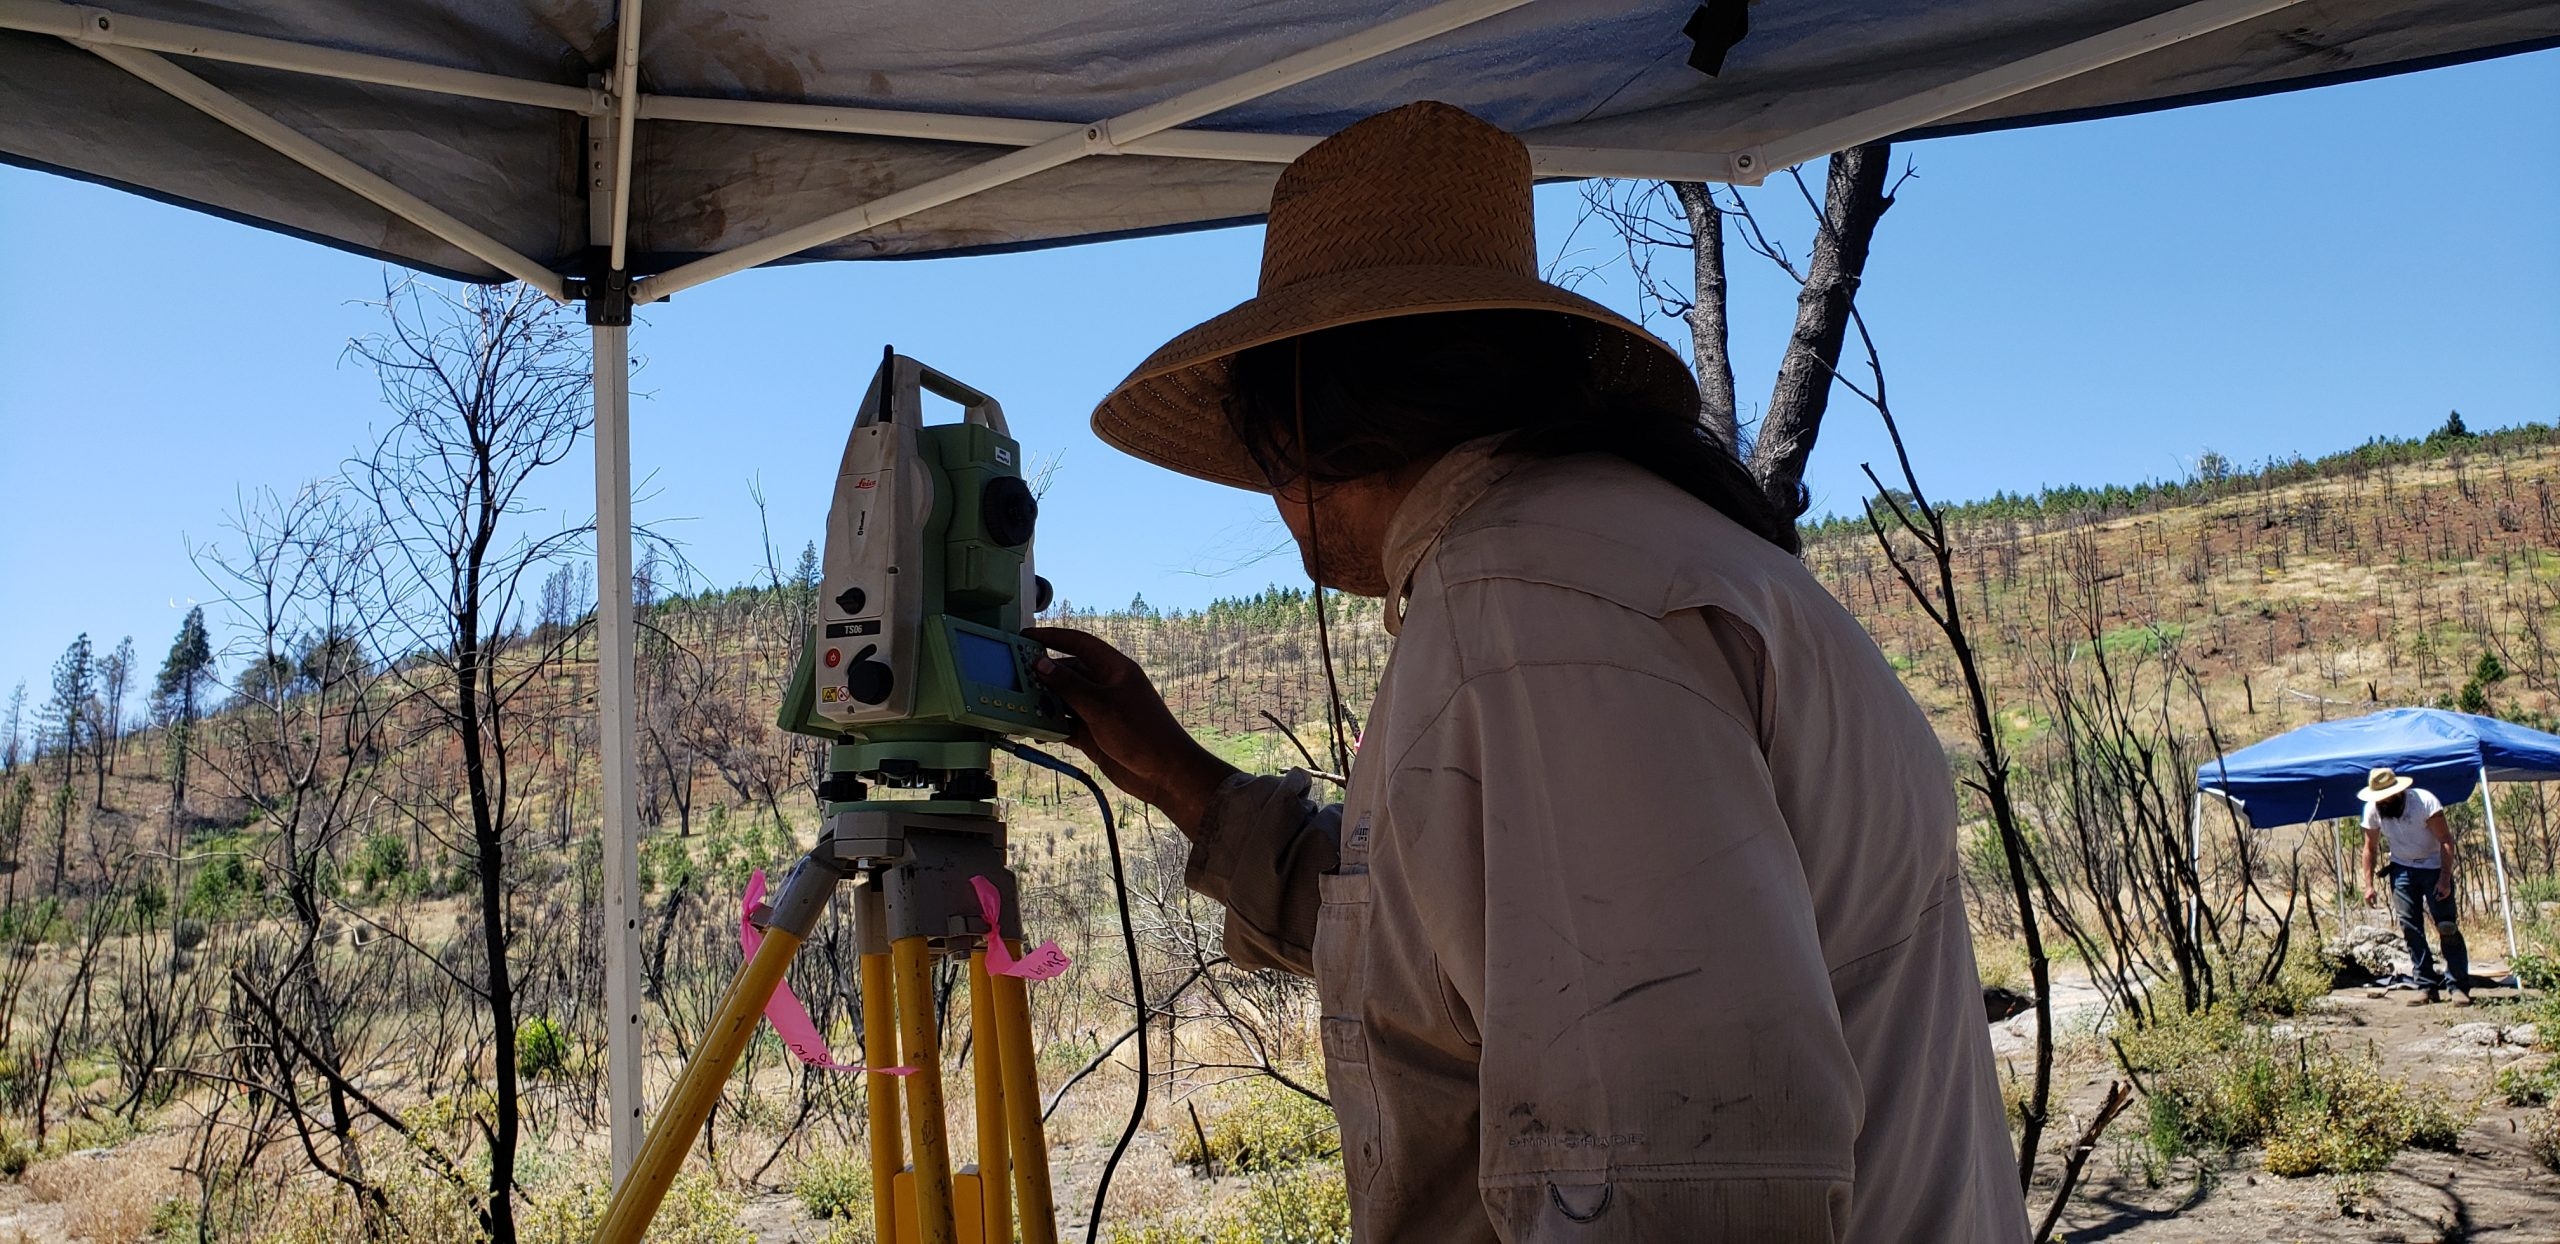 ImagePerson with a Total Station